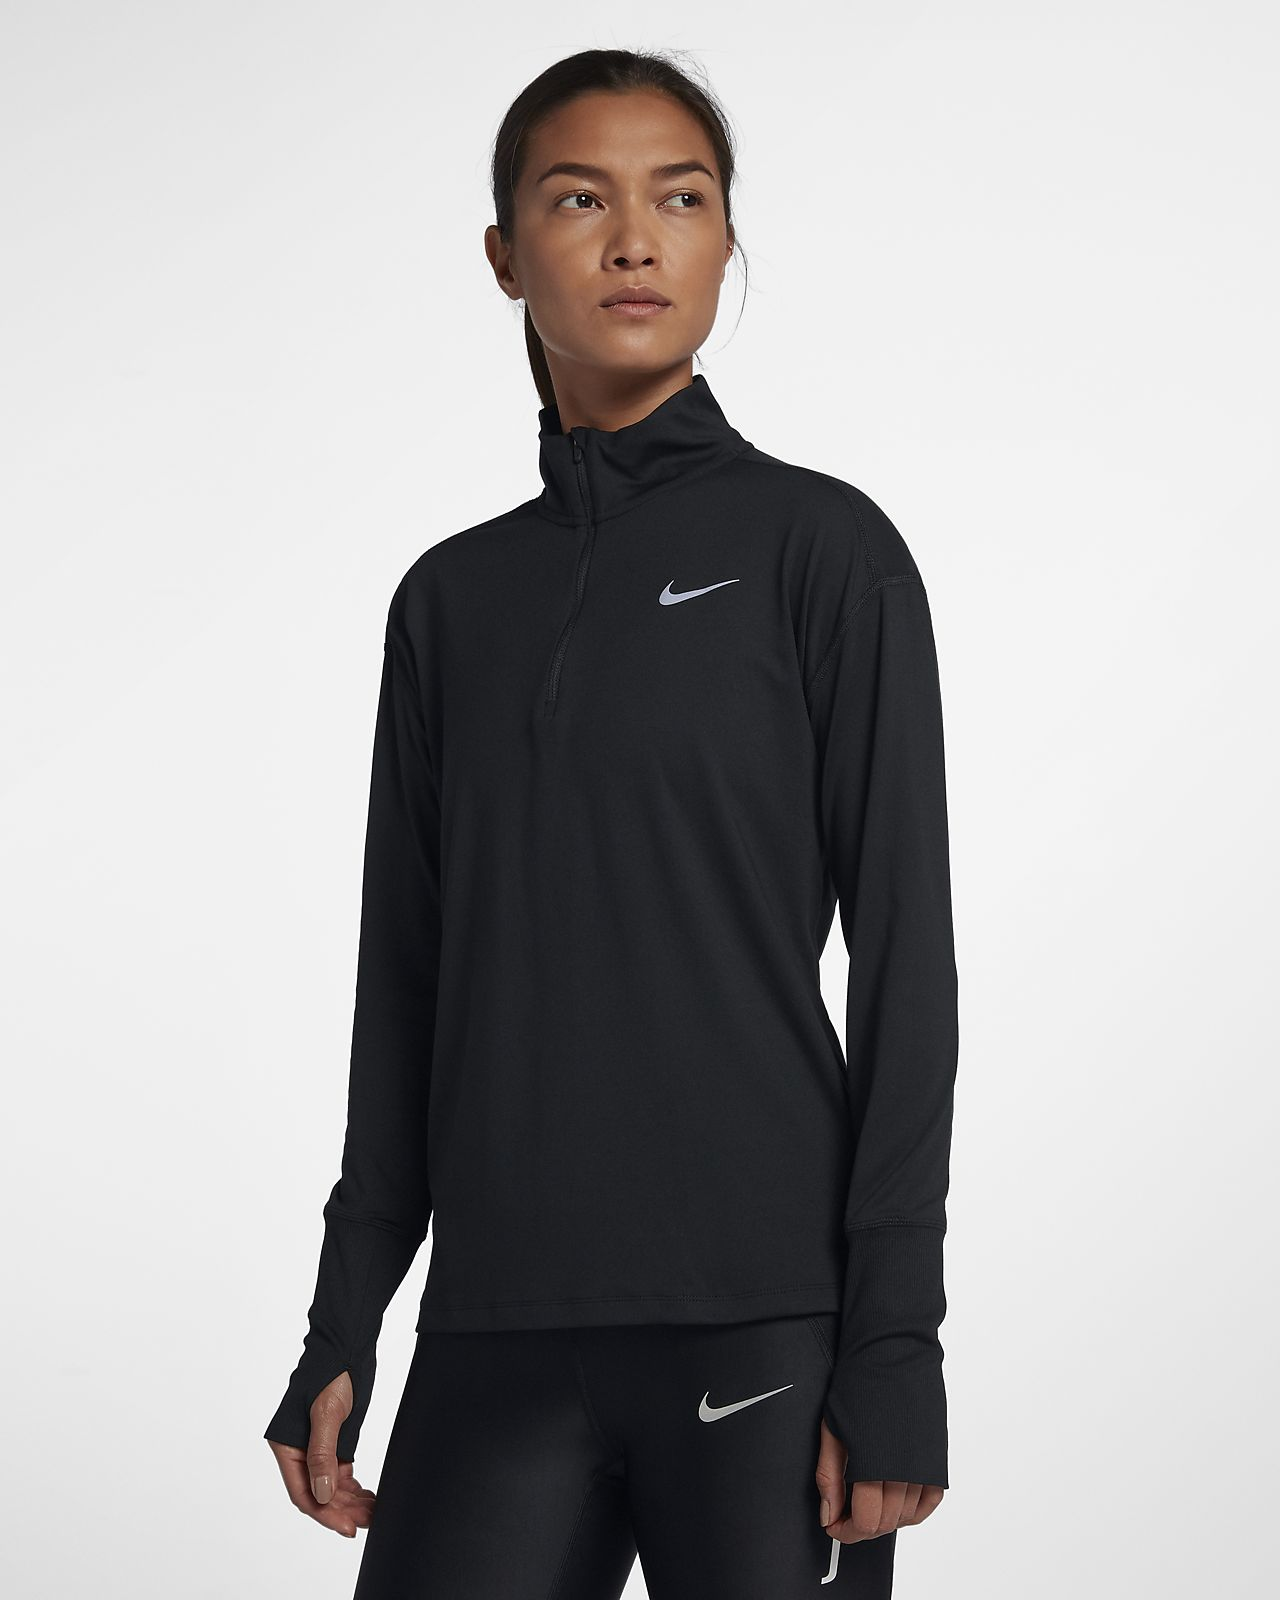 Nike Women's Half-Zip Running Top